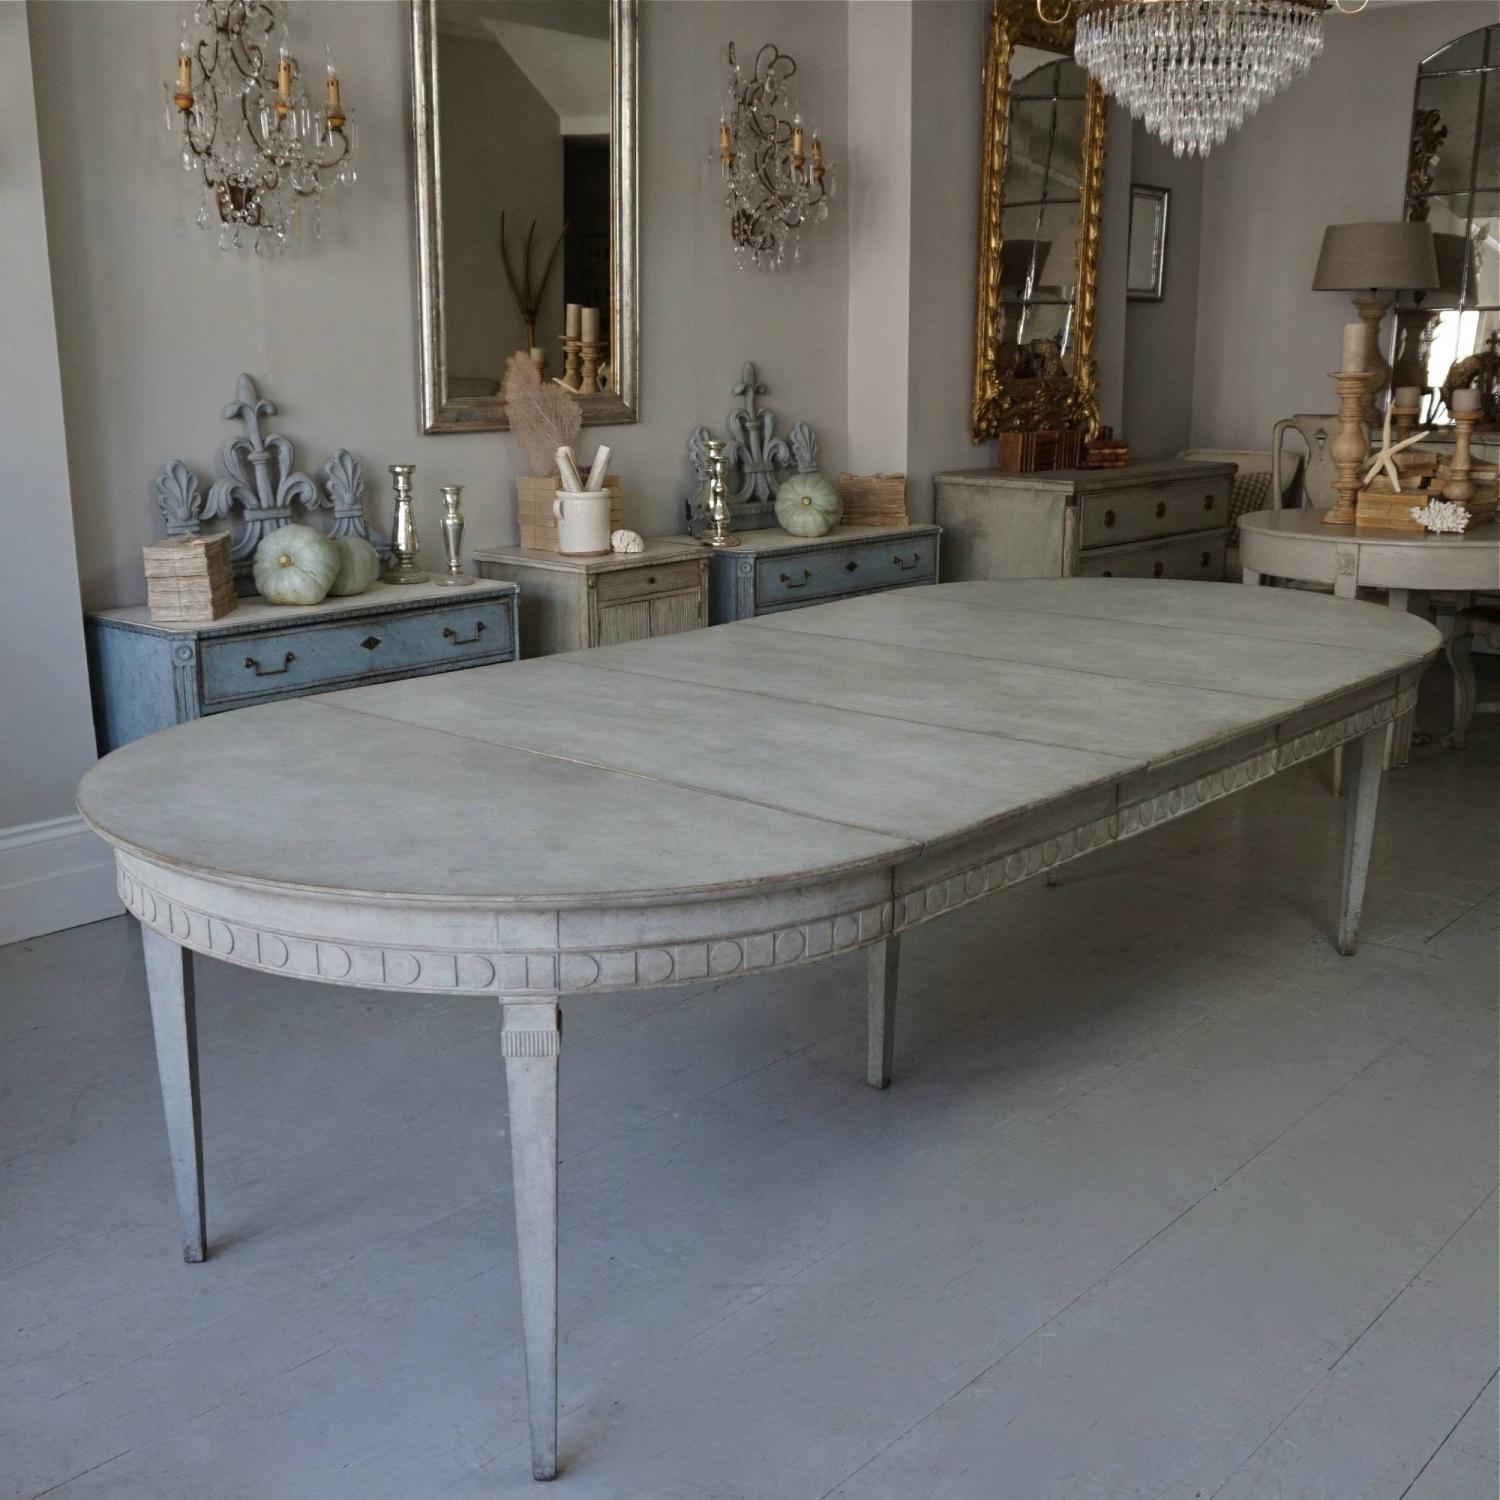 SUPERB QUALITY GUSTAVIAN STYLE EXTENSION TABLE